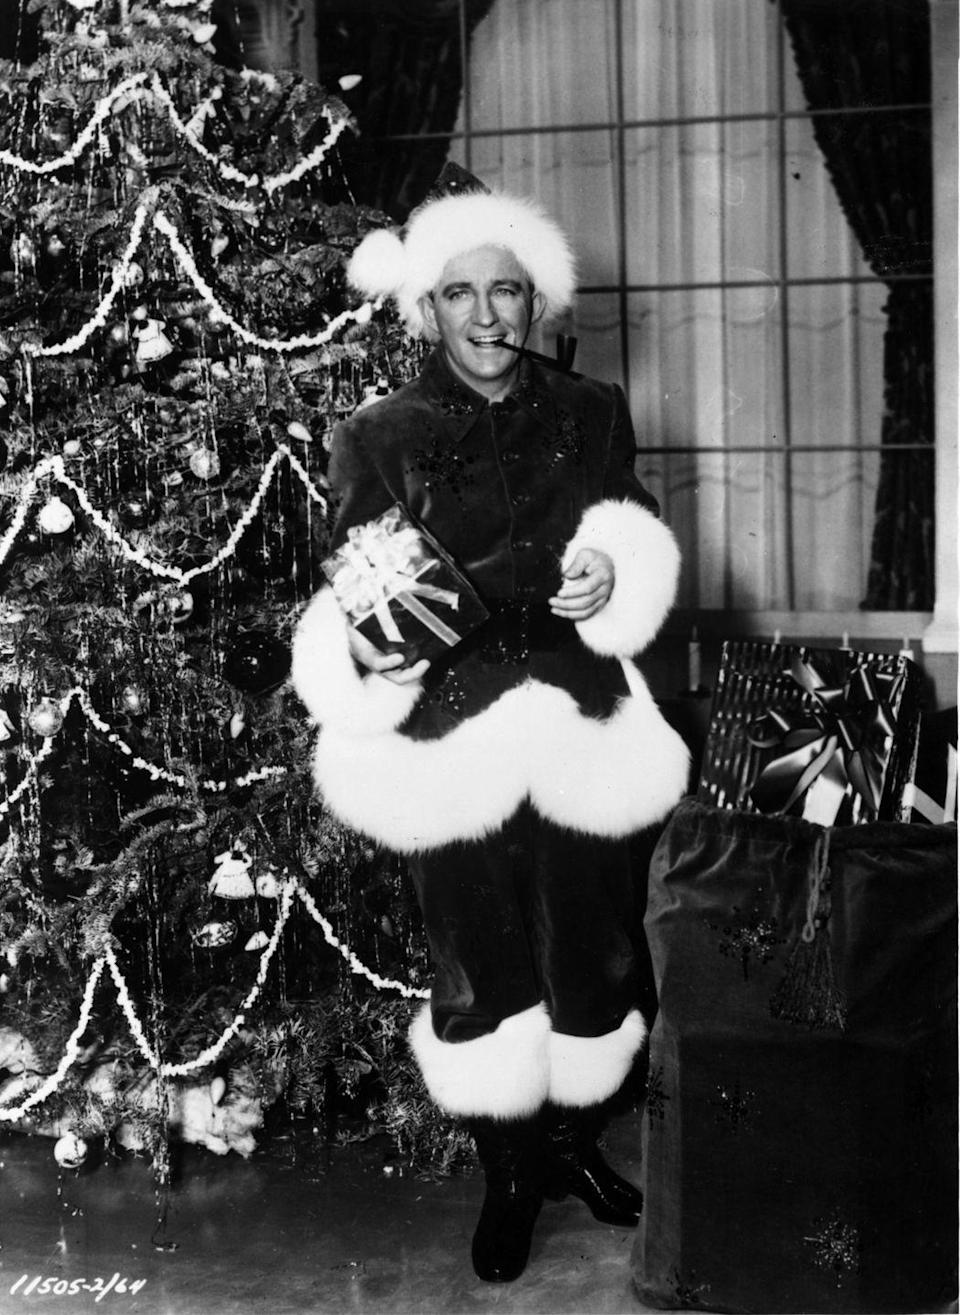 <p>The acclaimed Christmas-song performer poses next to a yuletide tree, donning a Santa costume, in 1954.</p>